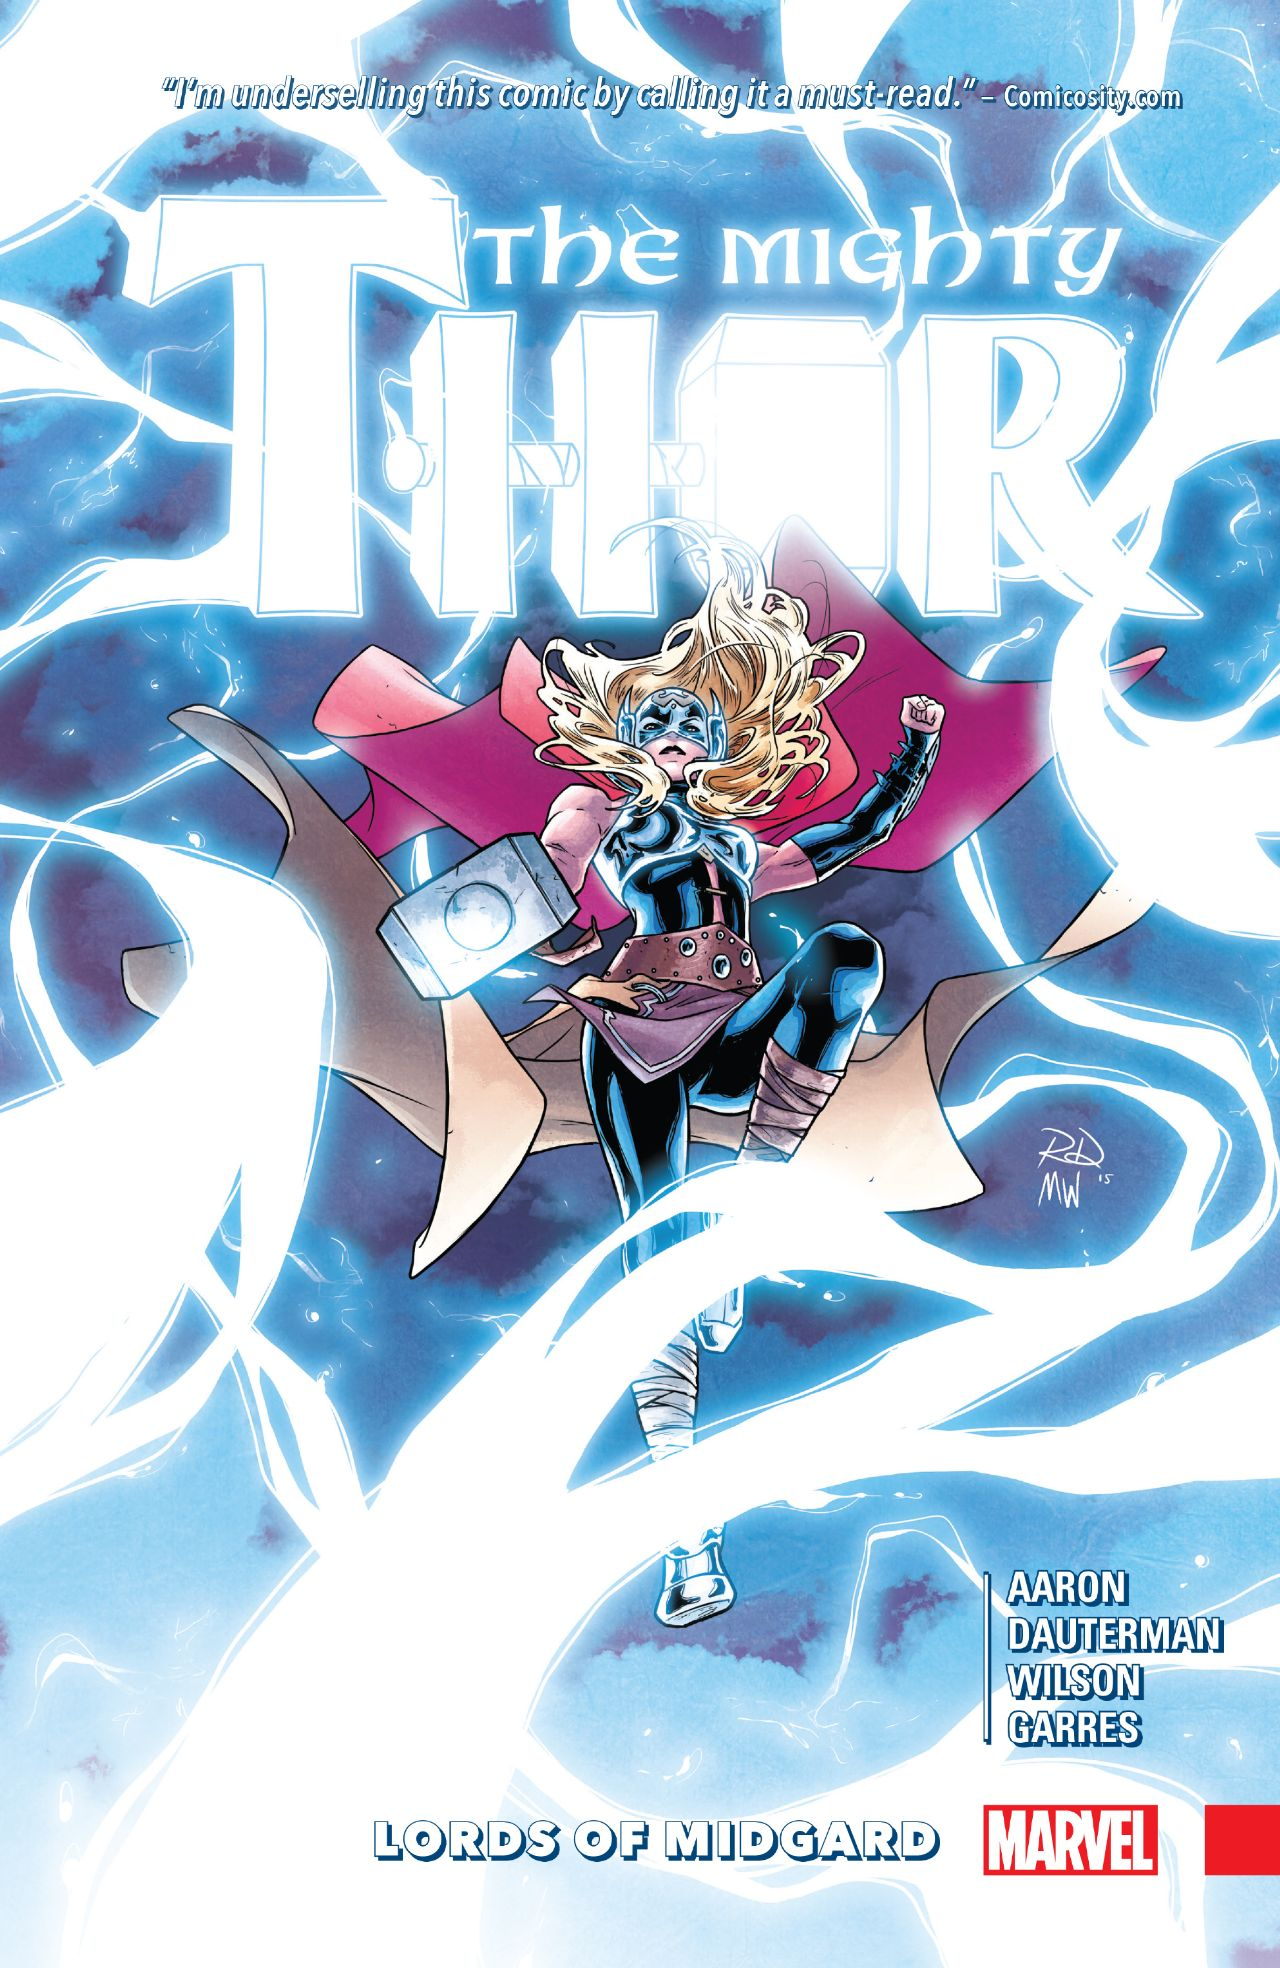 'Mighty Thor Vol 2: Lords of Midgard' needs to spend a little more time with its title character